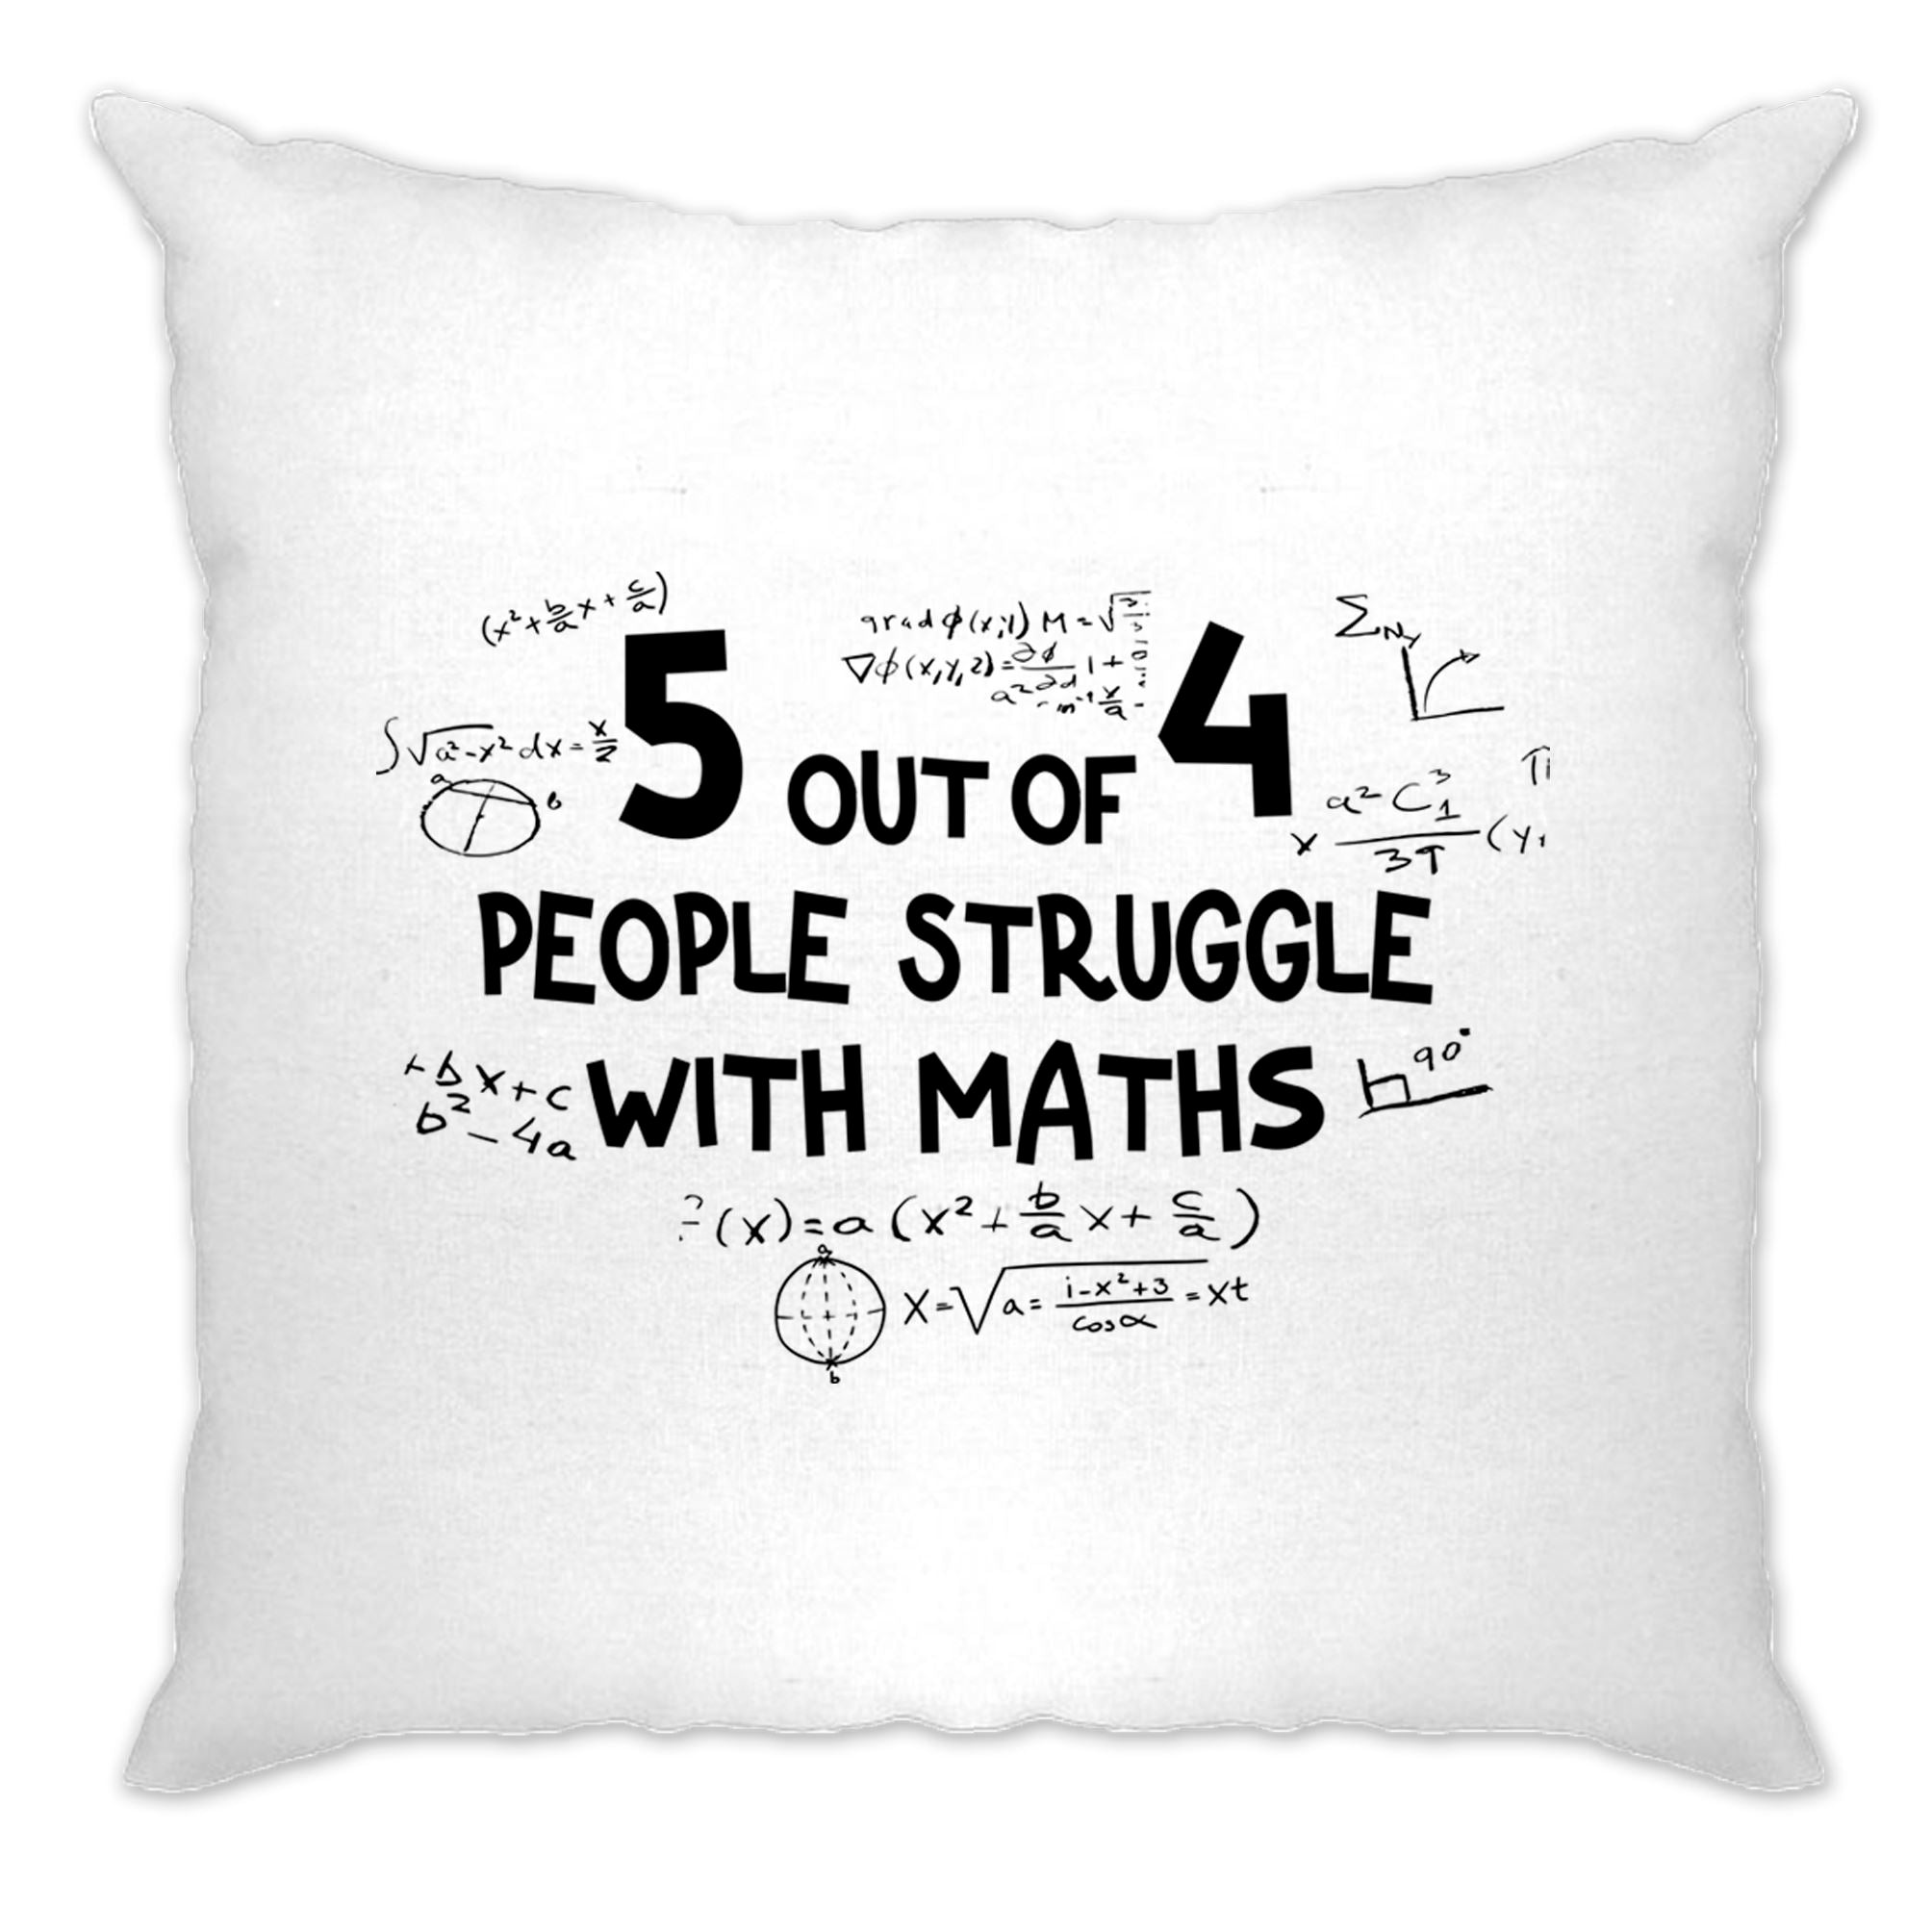 Funny Cushion Cover 5 Out Of 4 People Struggle With Maths